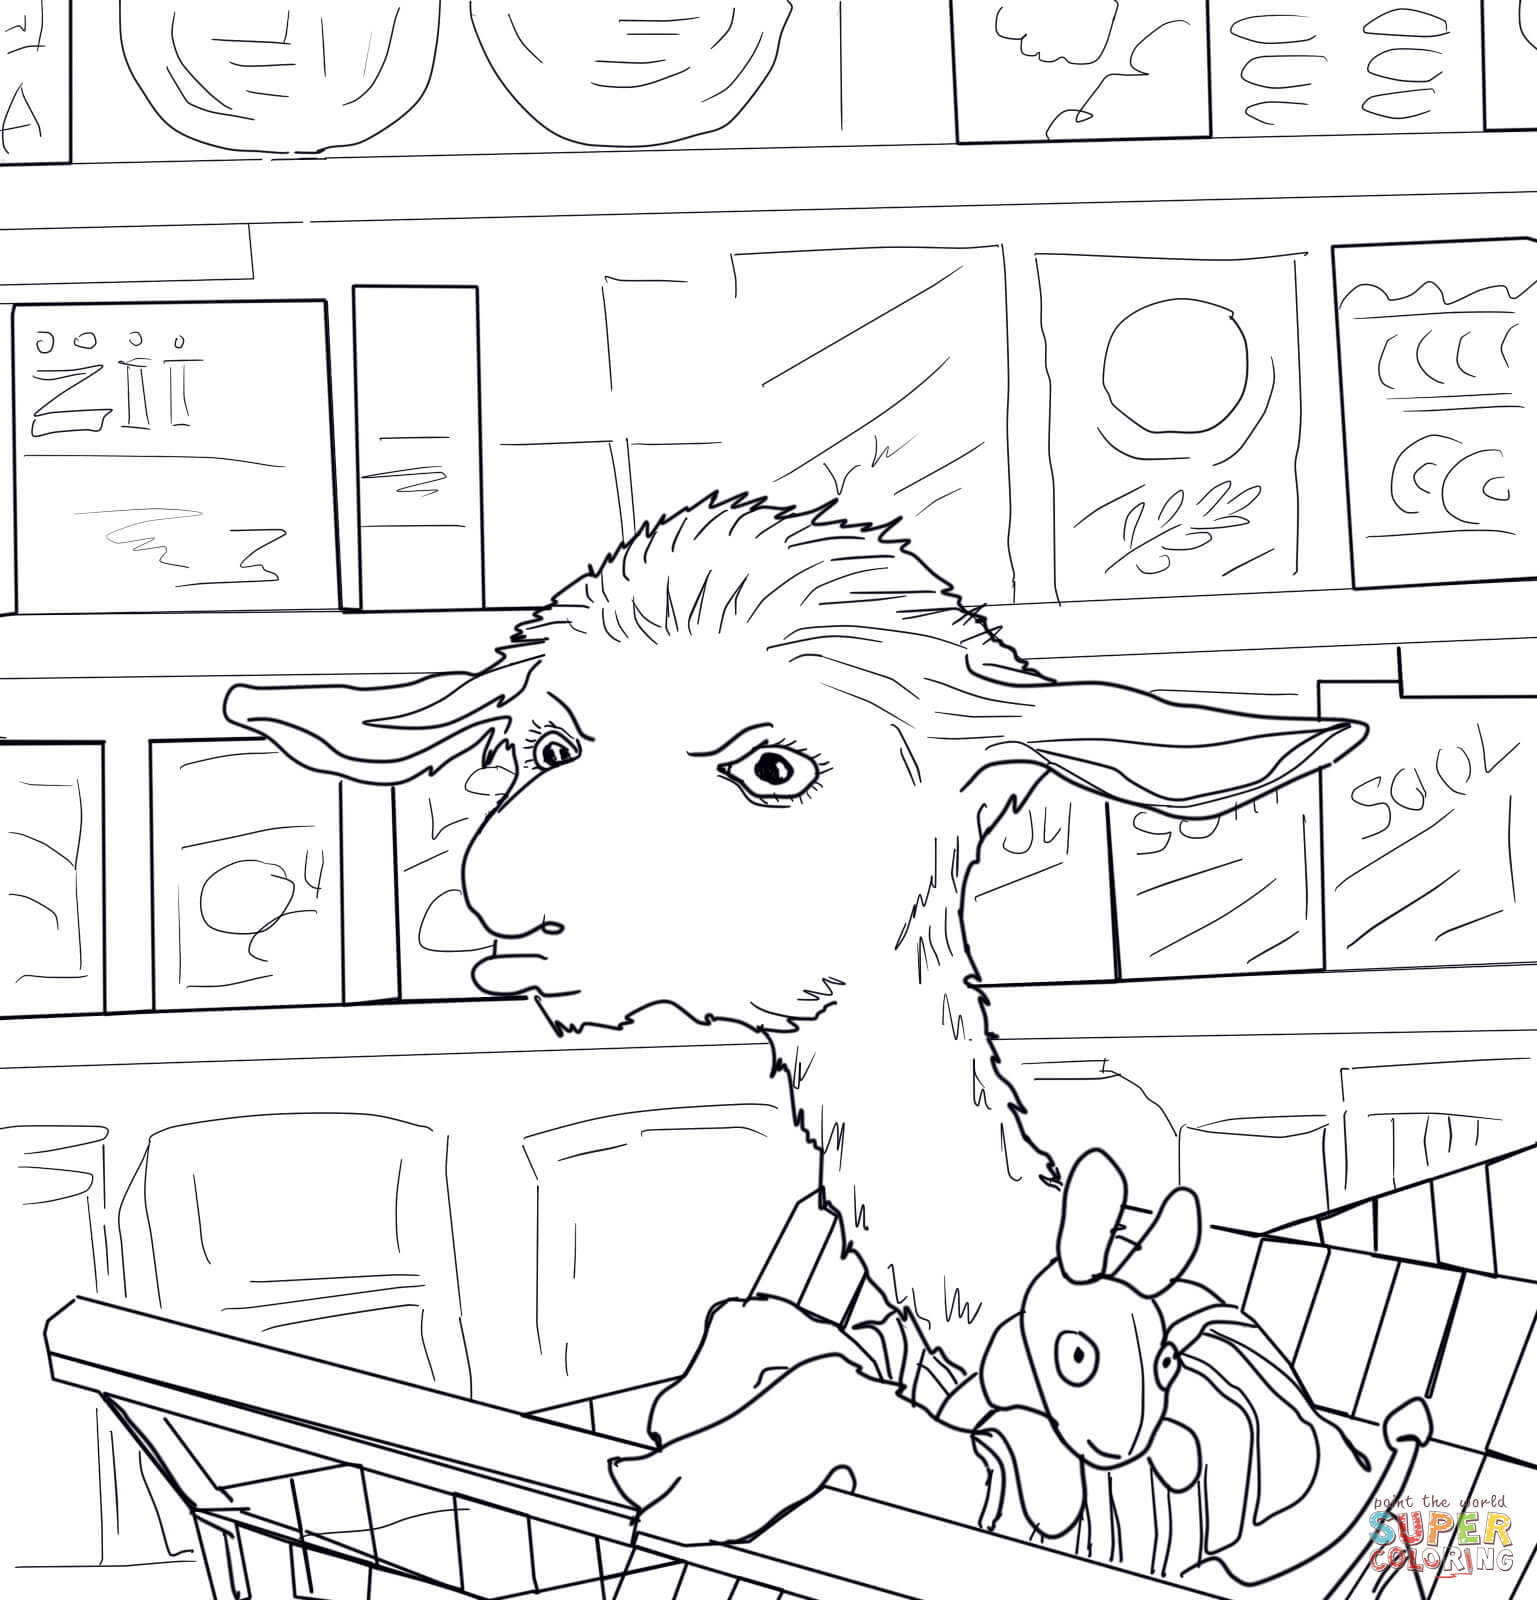 Llama Llama Red Pajama Coloring Page | Free Printable Coloring Pages - Free Printable Pajama Coloring Pages